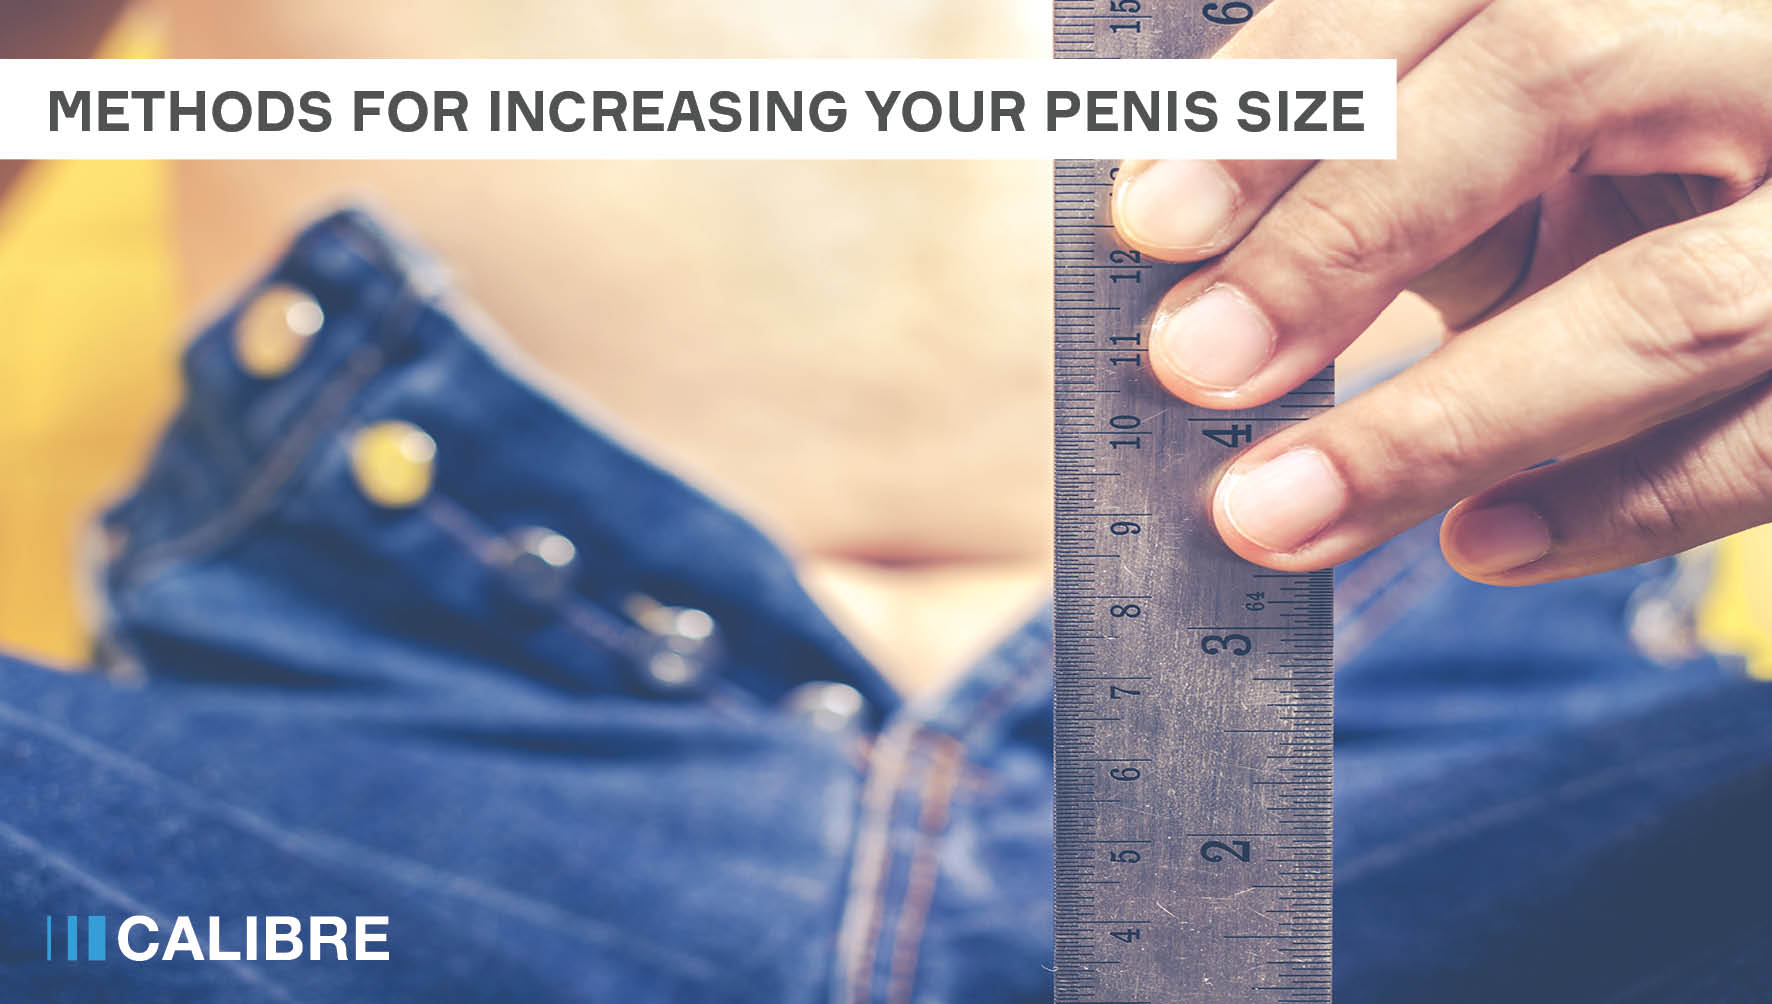 Increasing your penis size